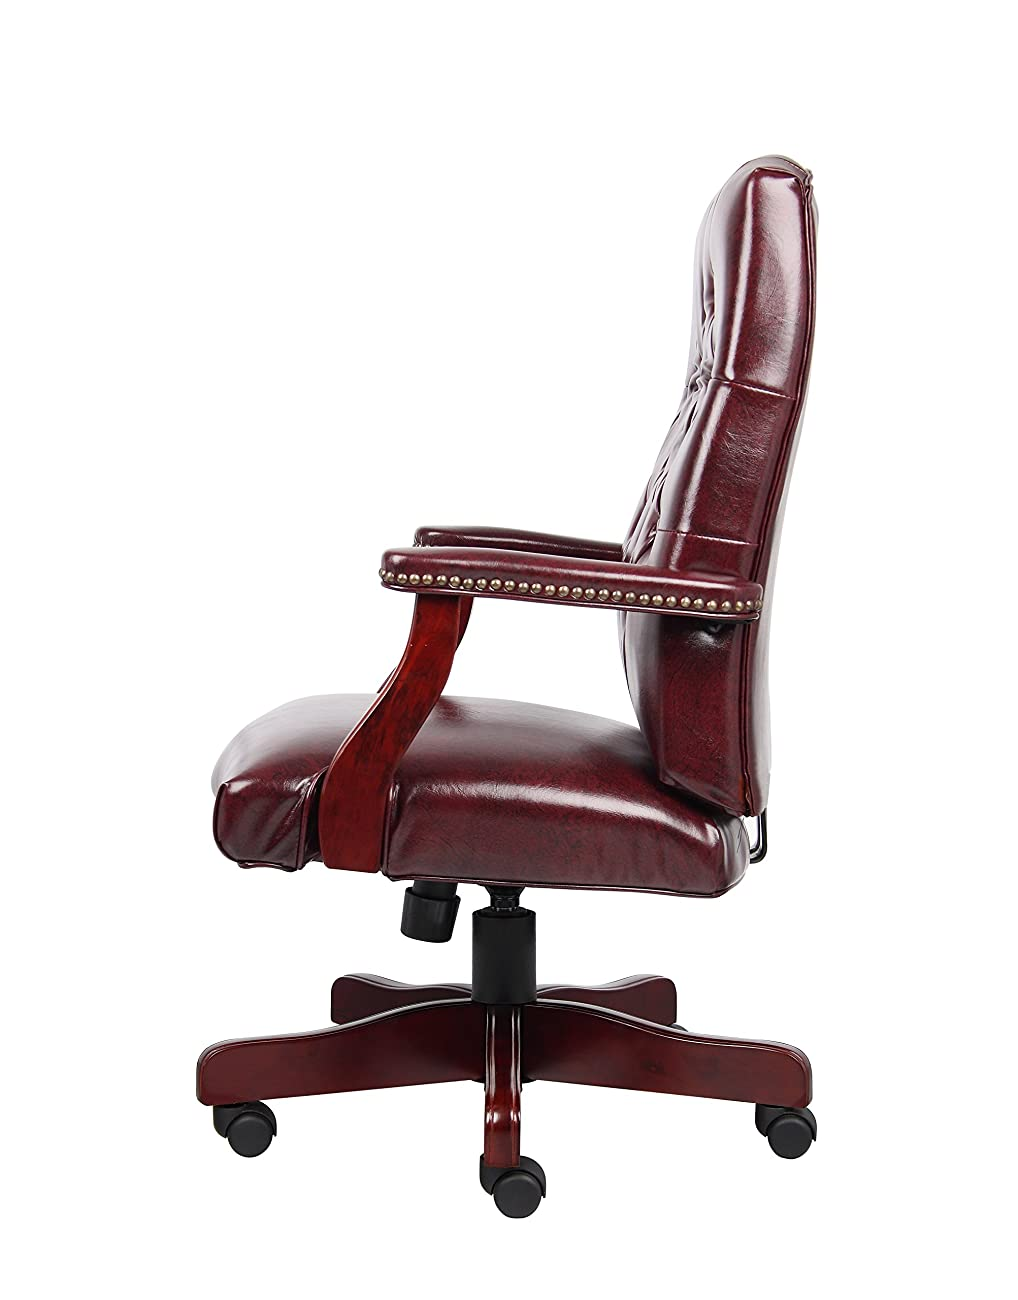 Boss Office Products B905-BY Classic Executive Caressoft Chair with Mahogany Finish in Burgundy 3